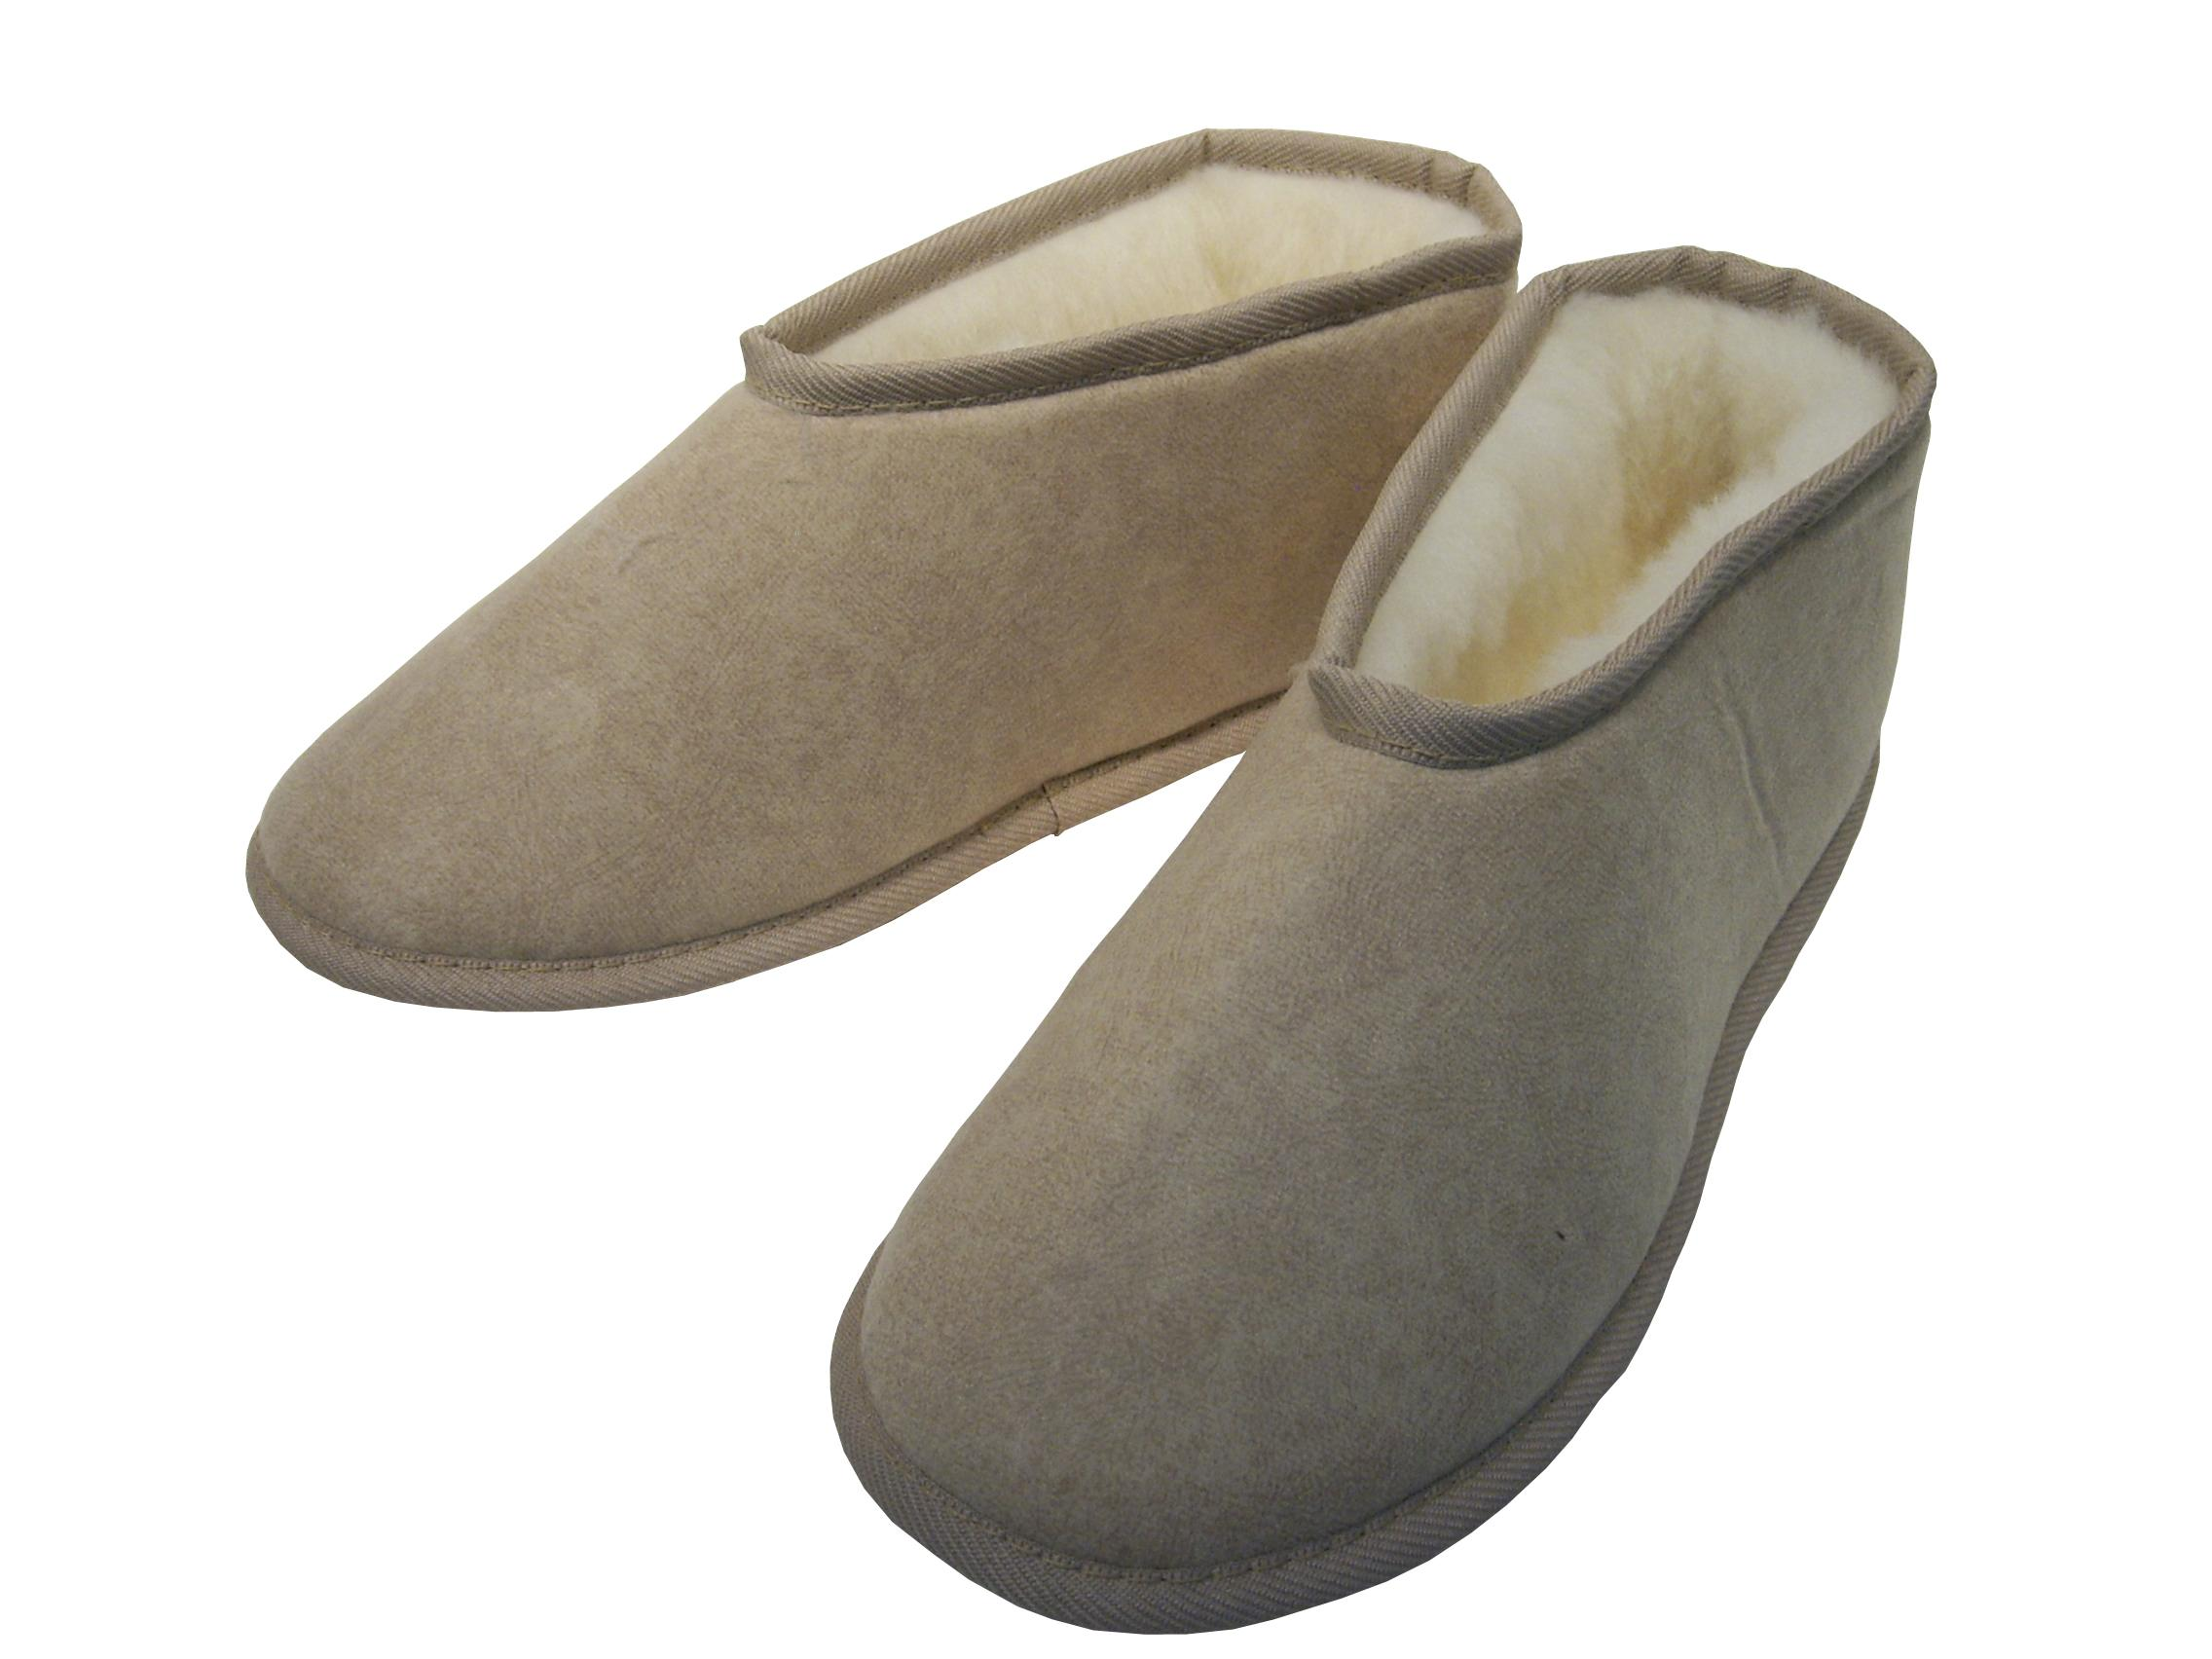 Auswool Pro Lambswool Slippers